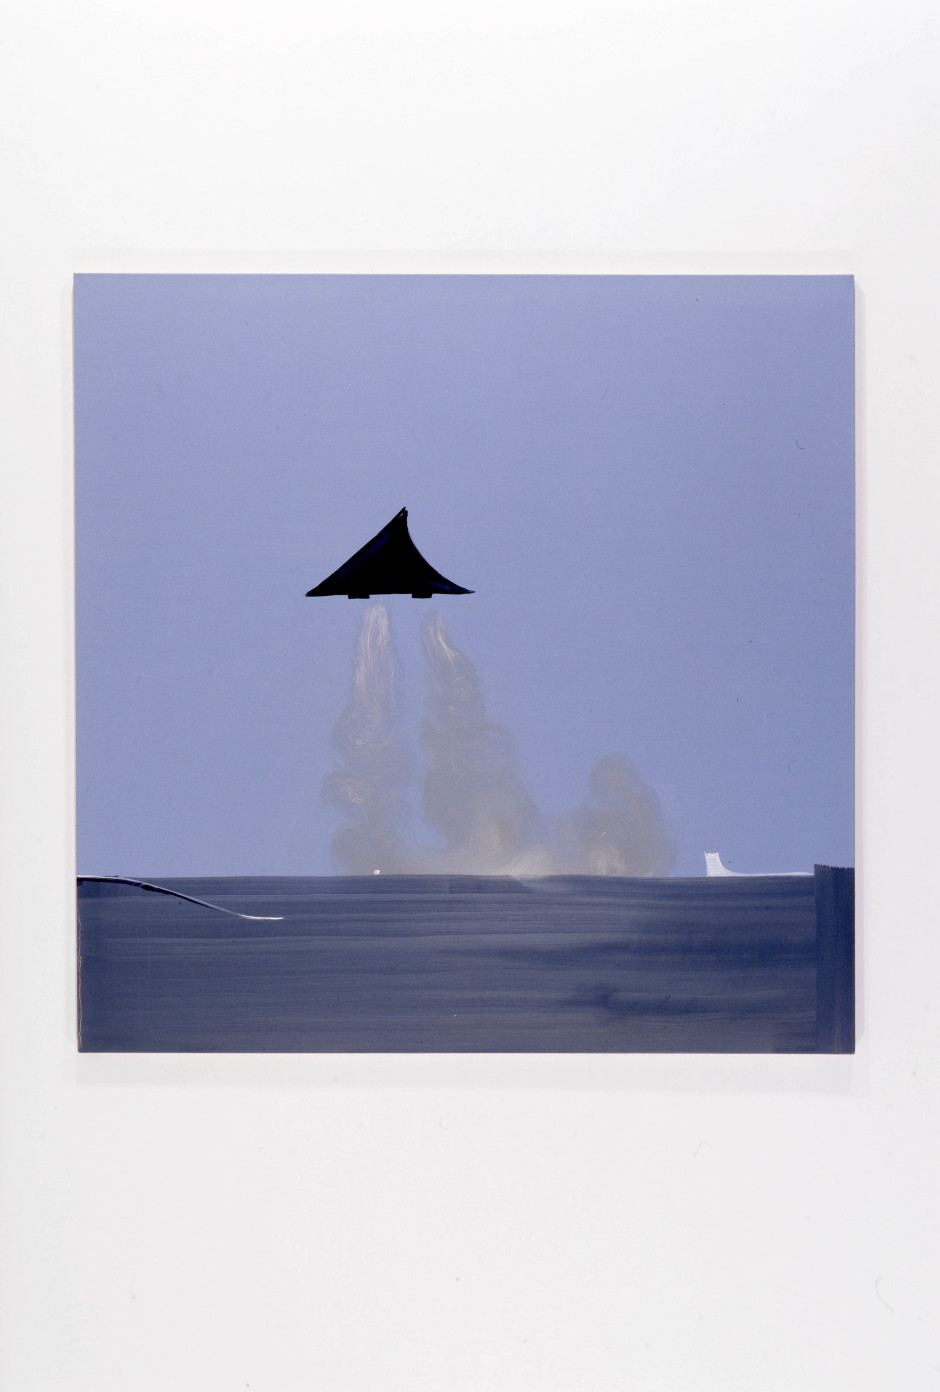 Concorde, 2007  oil on canvas  160.02 x 160.02 x 2.54 cm 63 x 63 x 1 in.